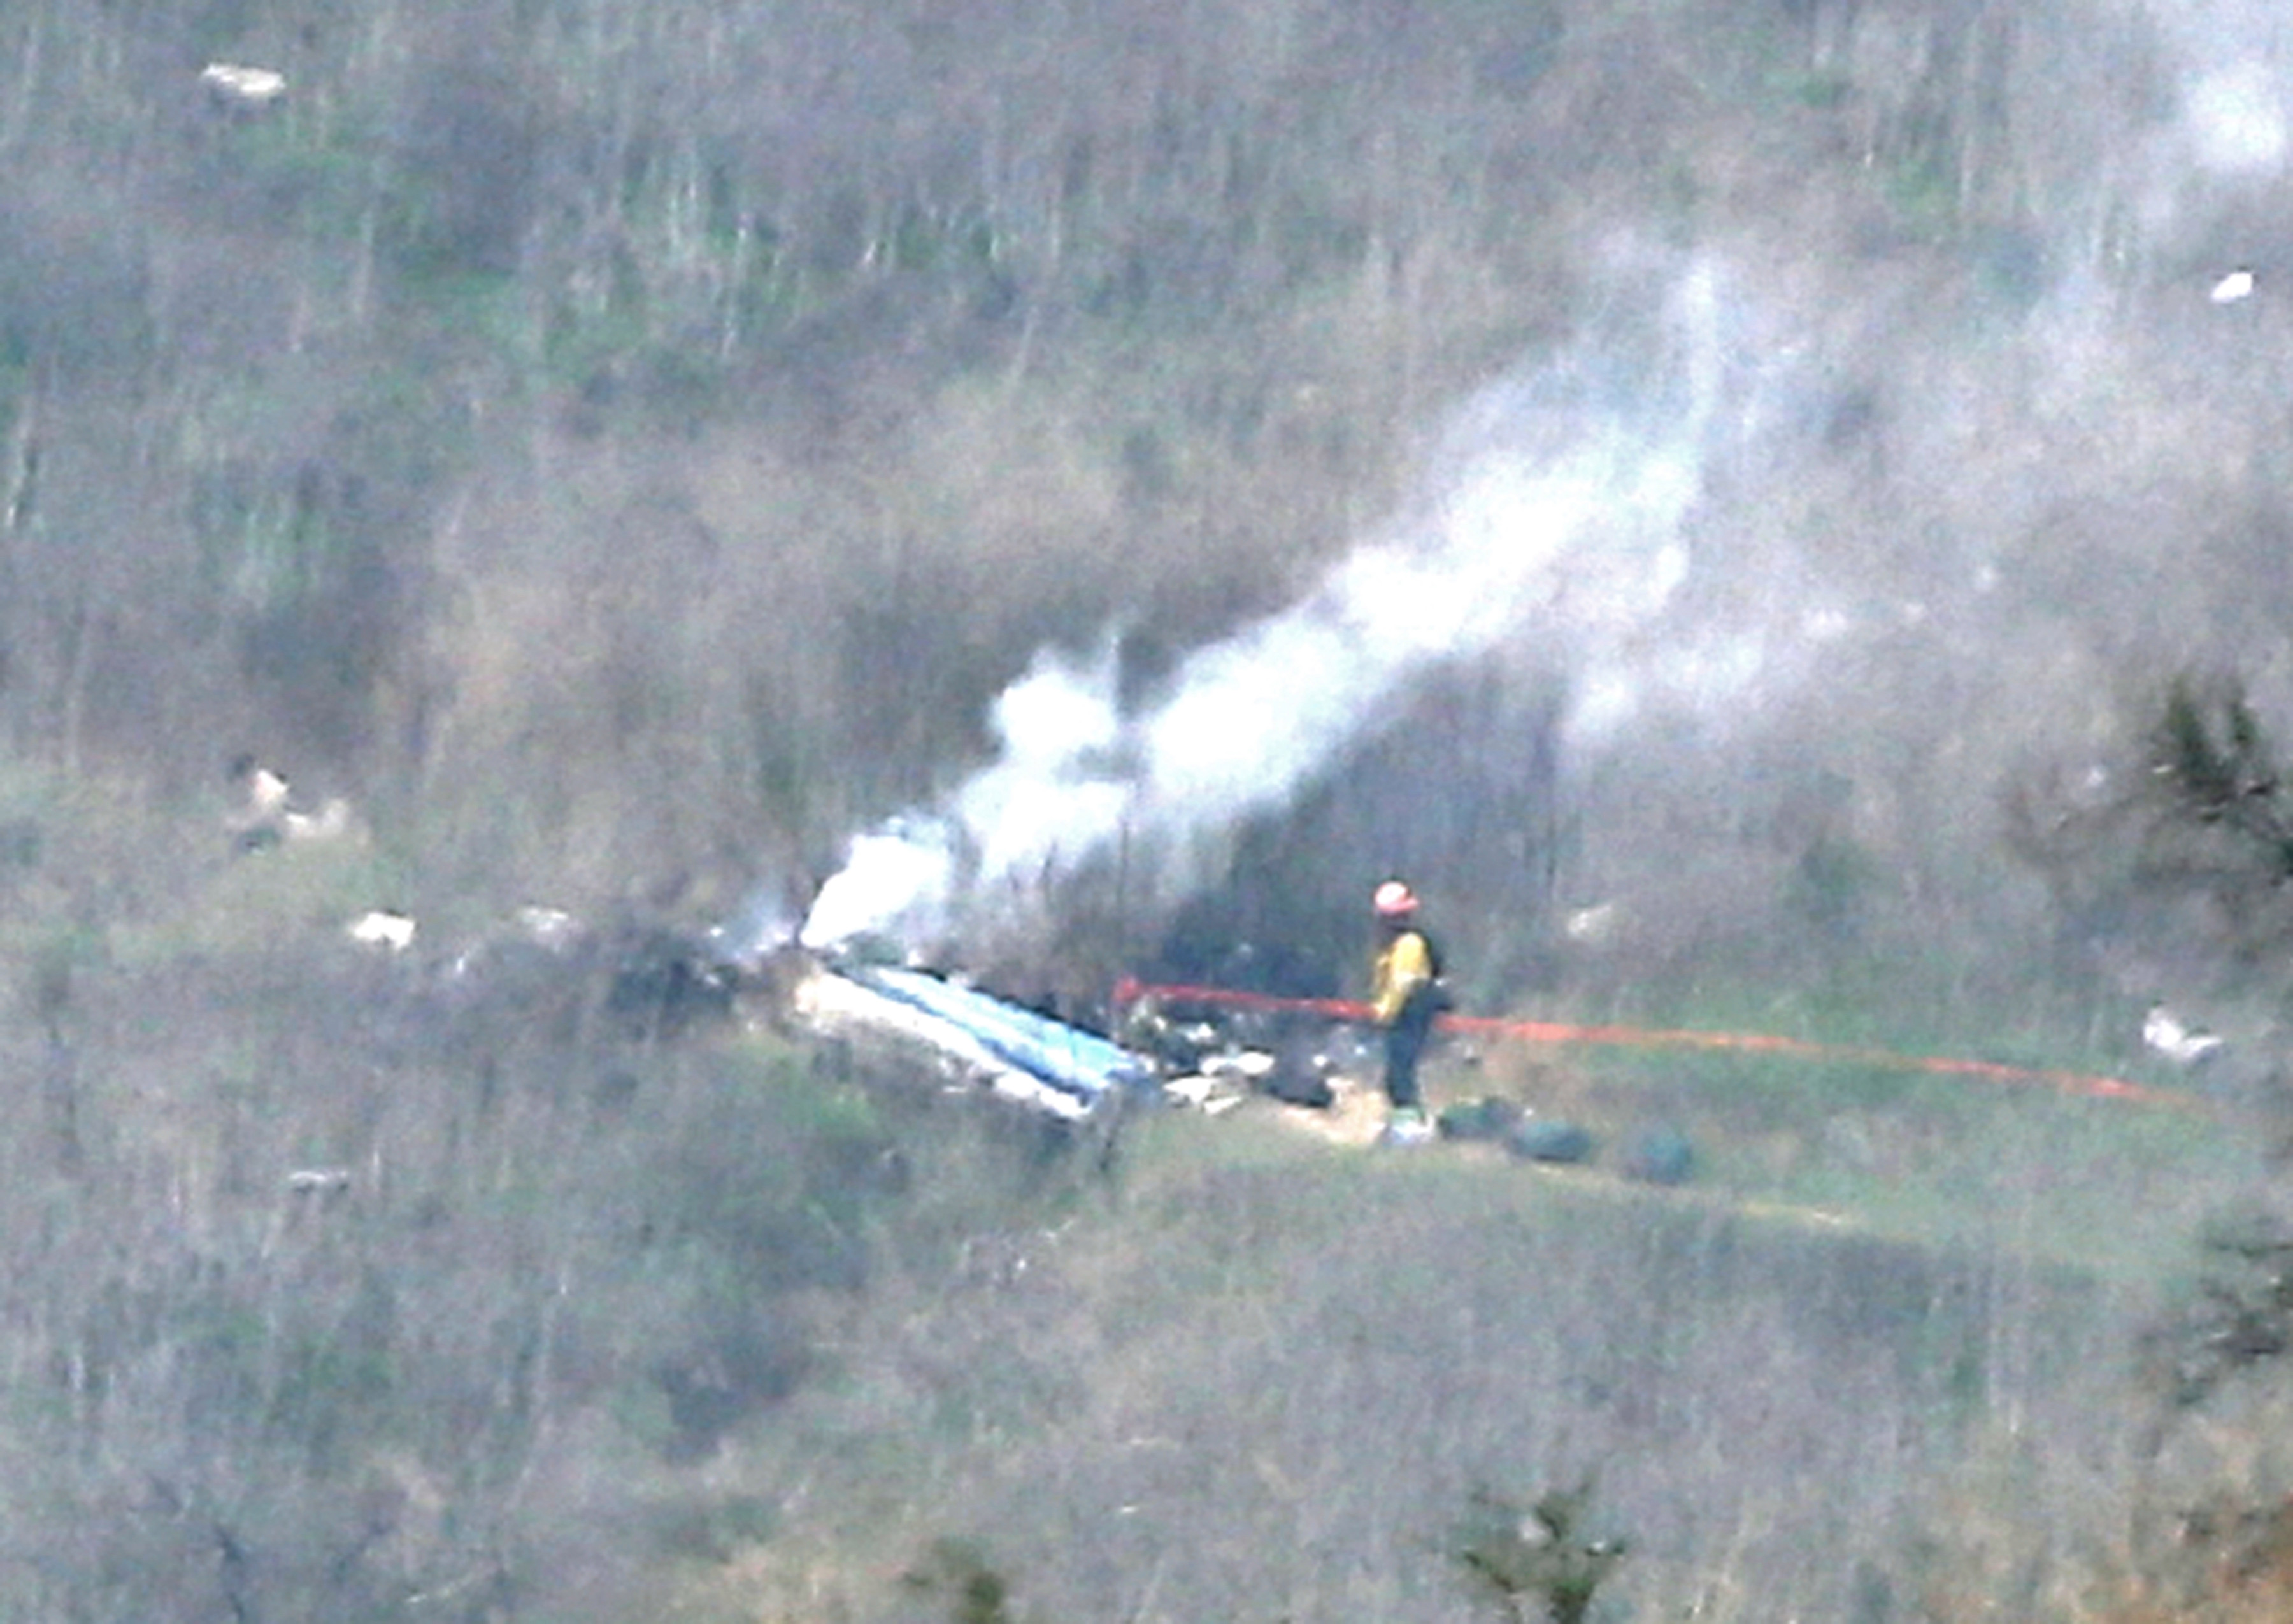 The remains of the helicopter can be seen in this picture